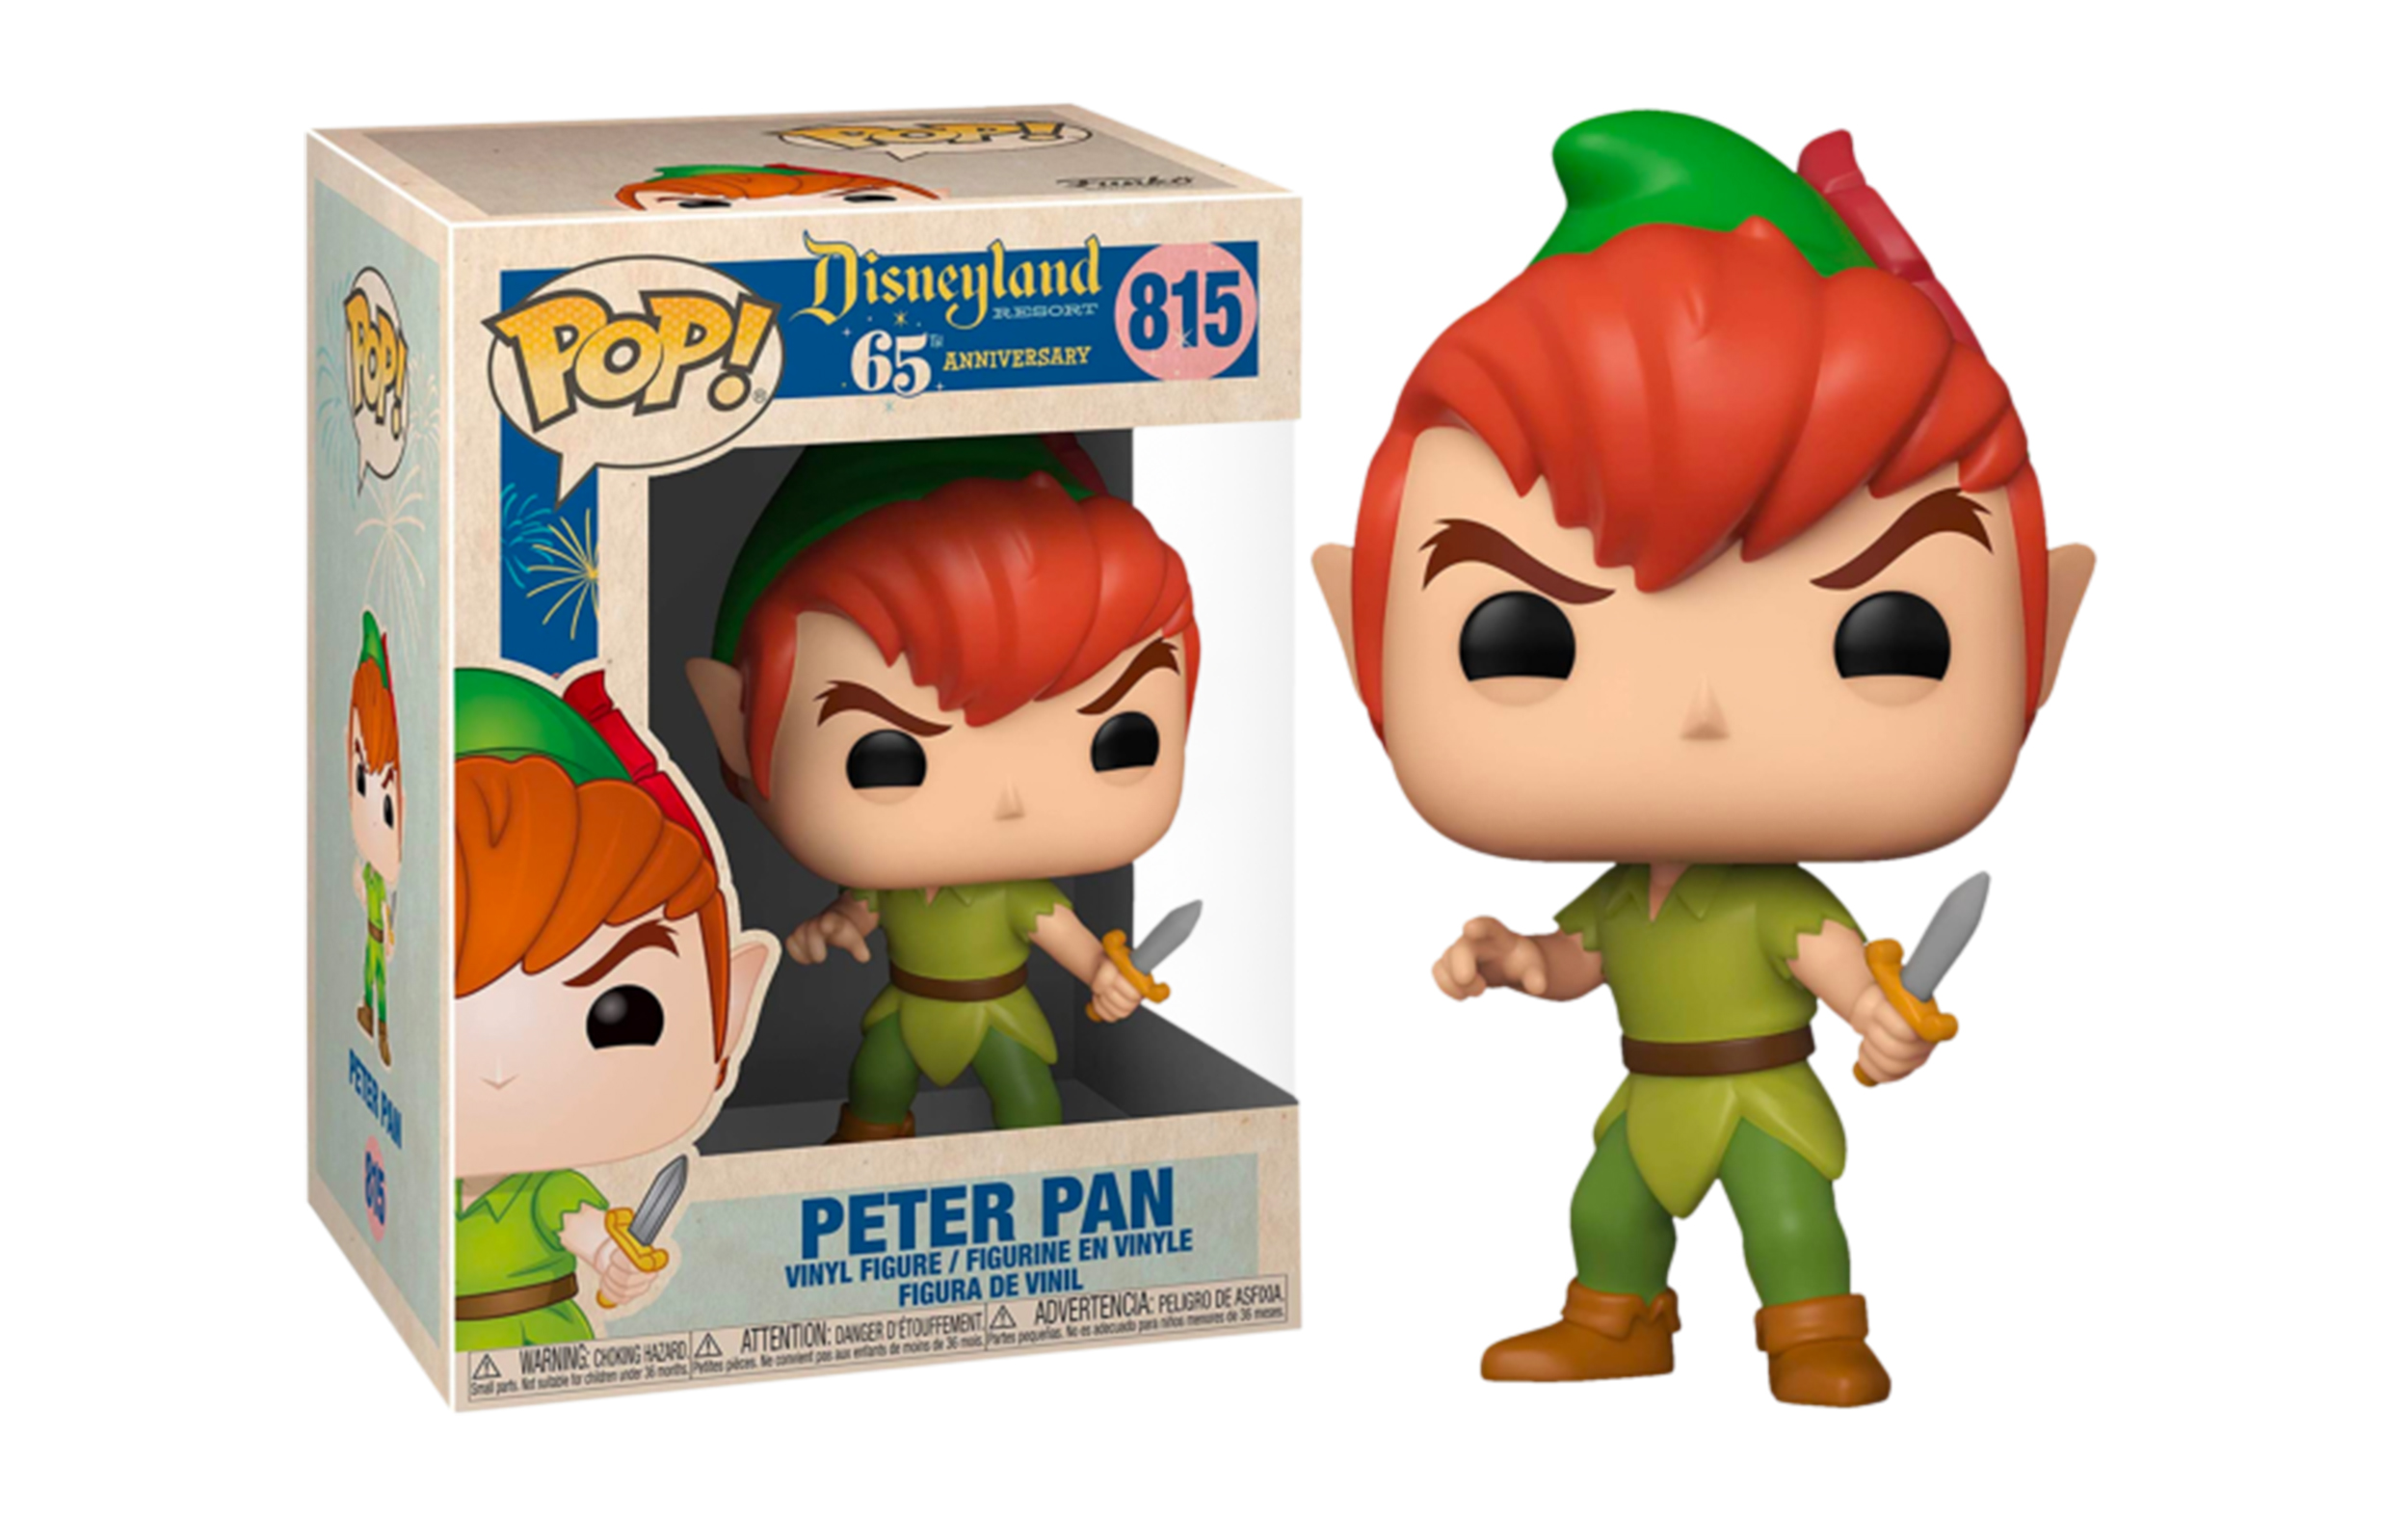 Disneyland 65th Anniversary Peter Pan 815 Funko POP Figure